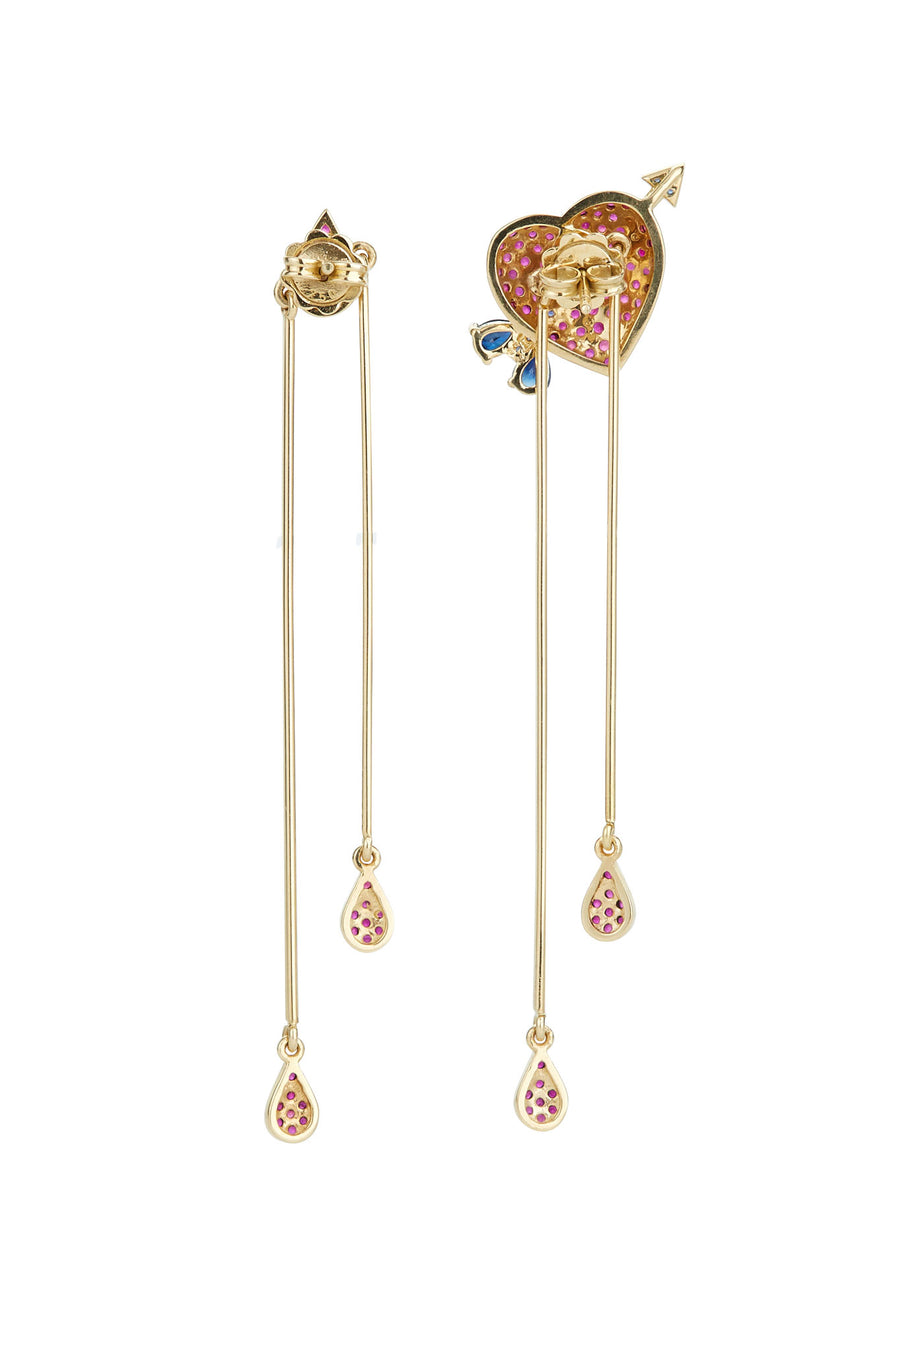 18K Gold and Ruby Bleeding Heart Earrings